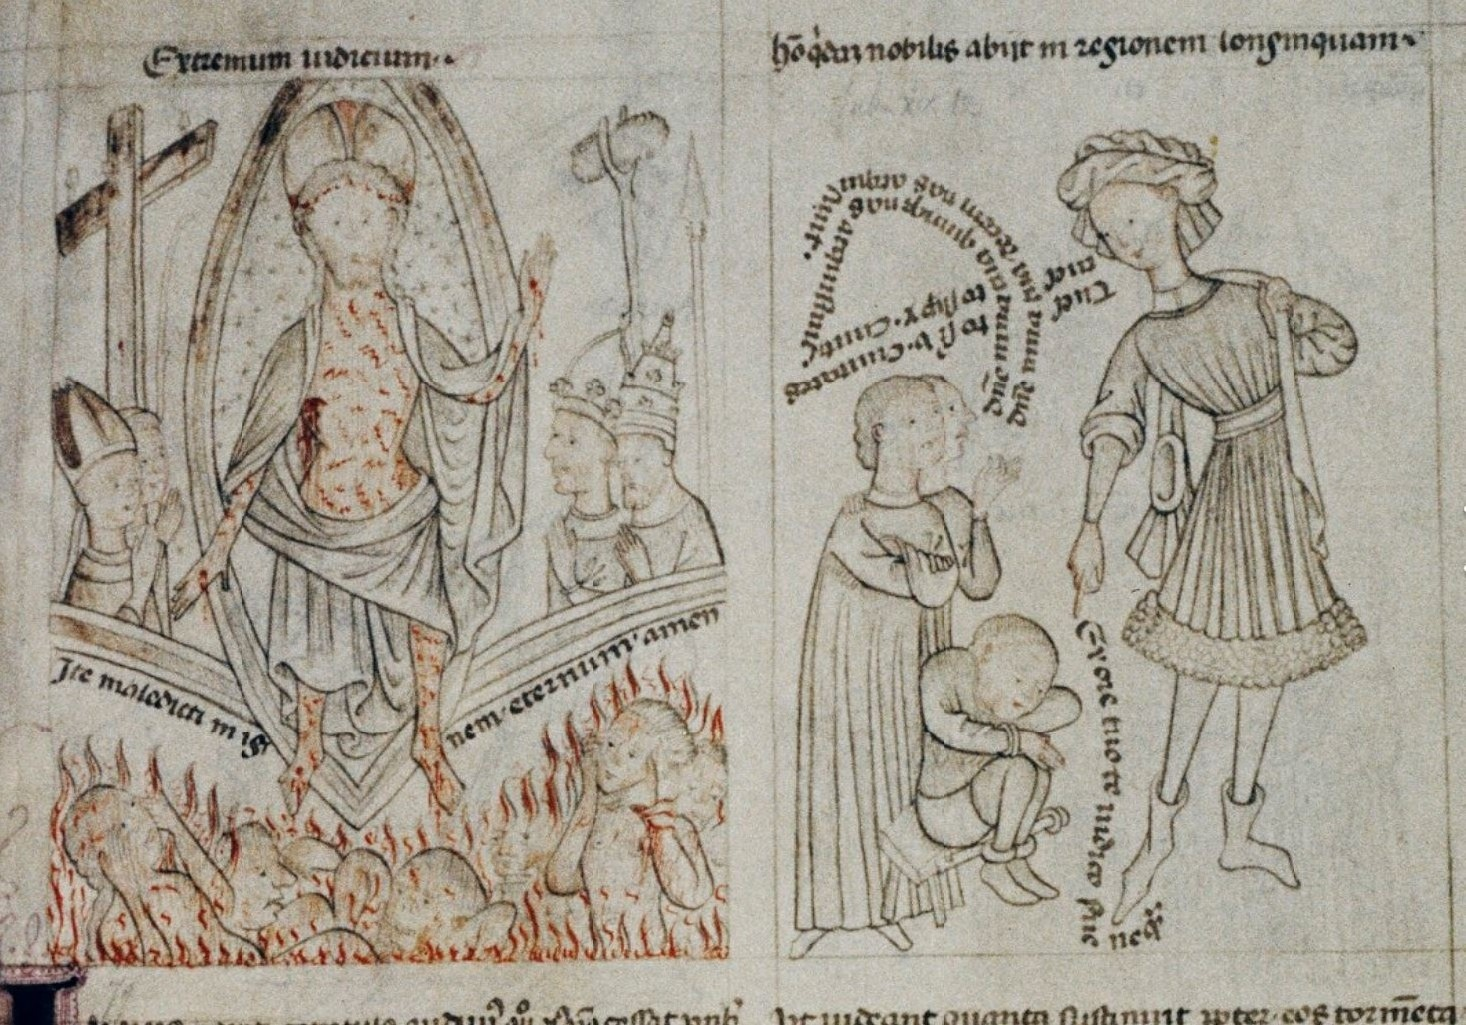 Speculum humanae salvationis 1430-50 Oxford, Bodleian Library Douce 204, fol. 40r